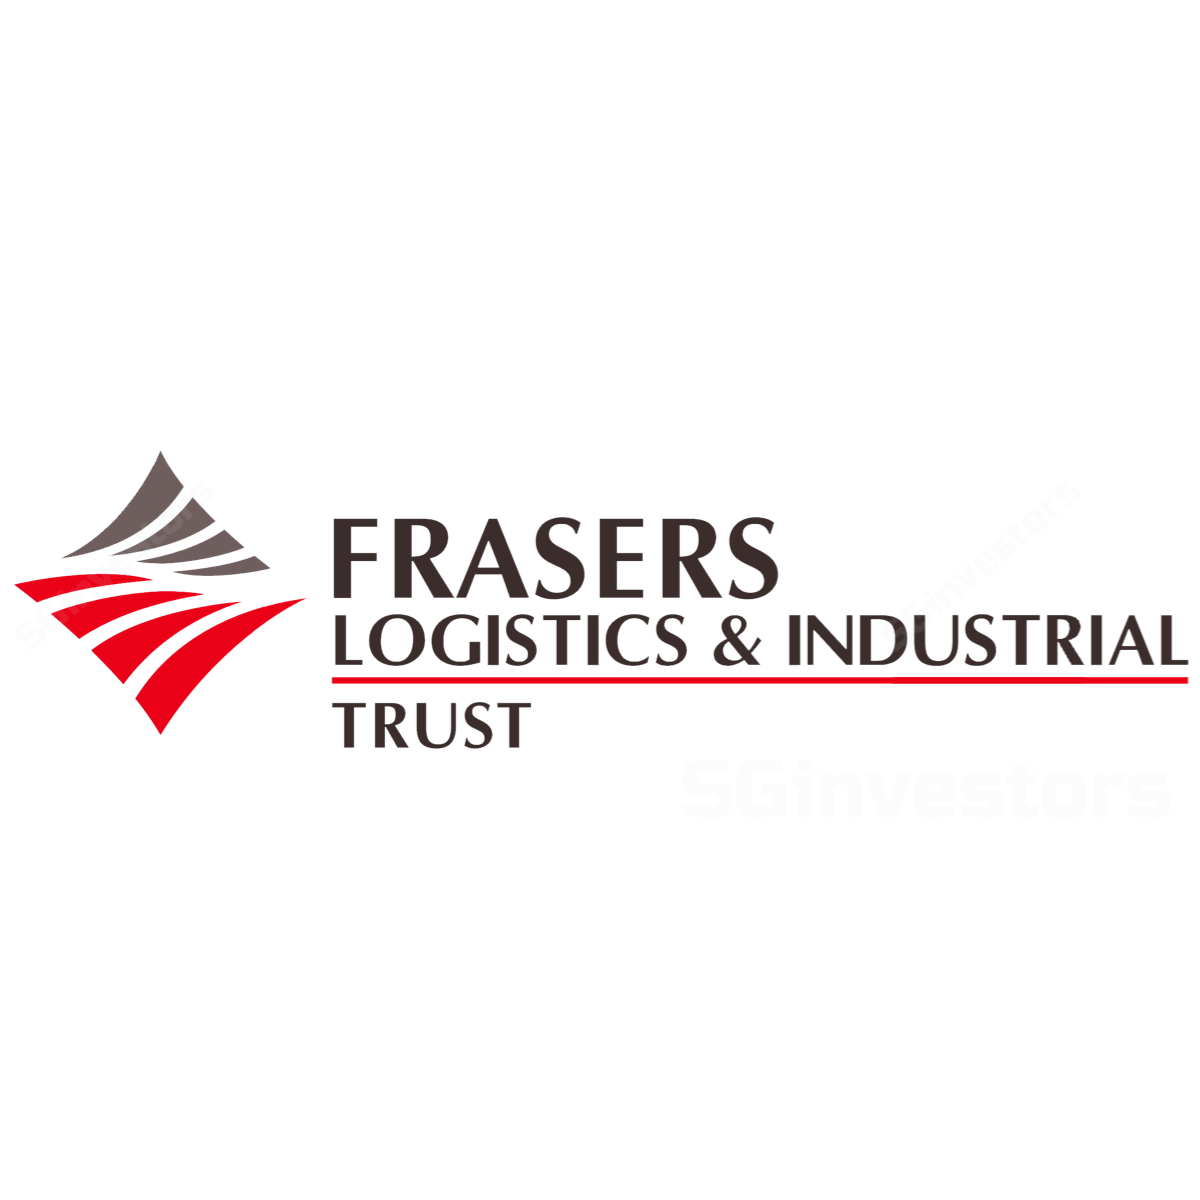 Frasers Logistics & Industrial Trust - OCBC Investment 2017-11-03: Remains As One Of Our Top Picks